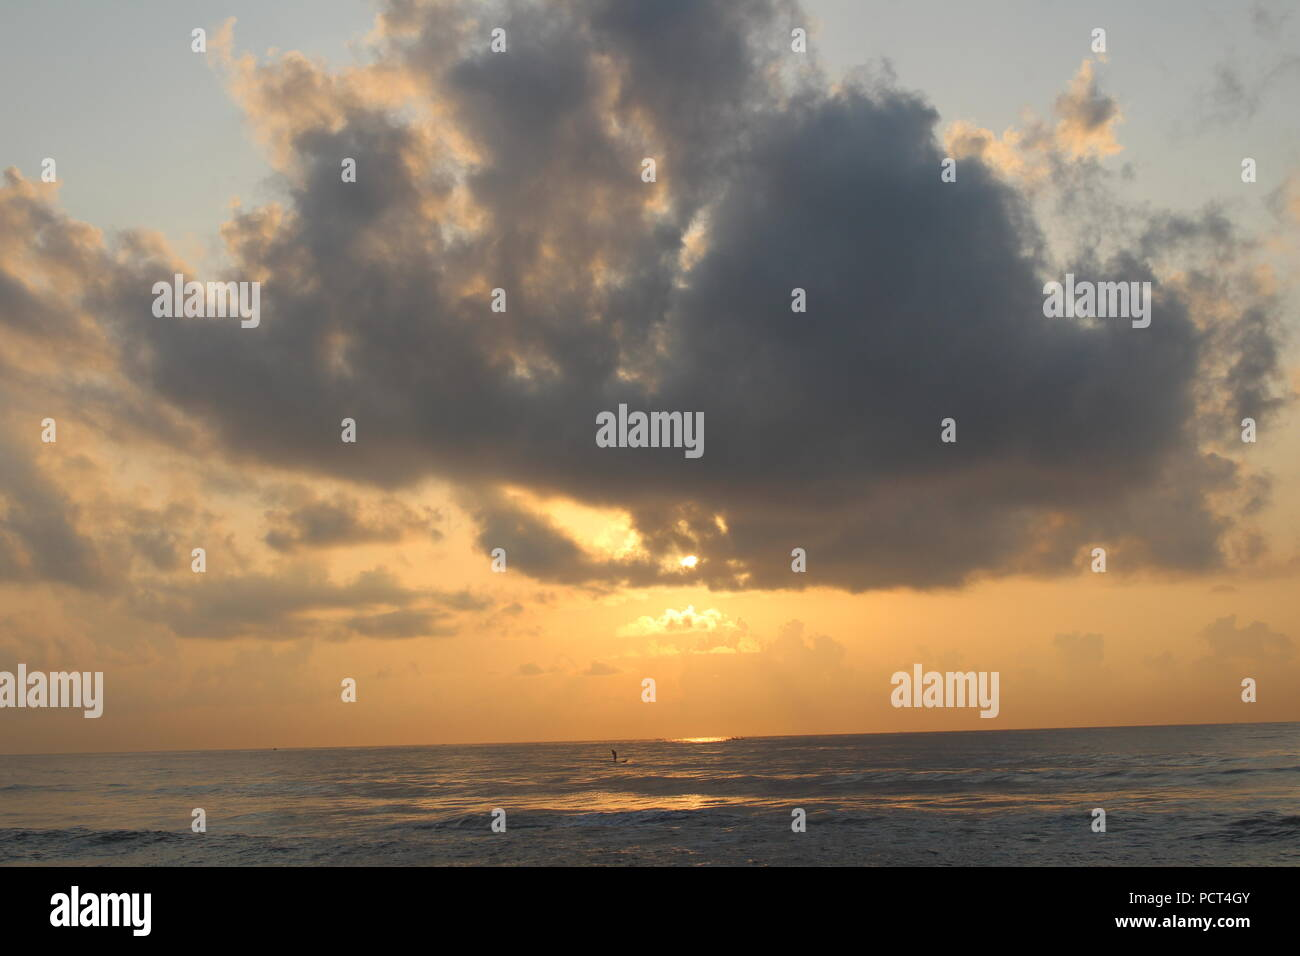 Sun Rise in Clouds - Stock Image